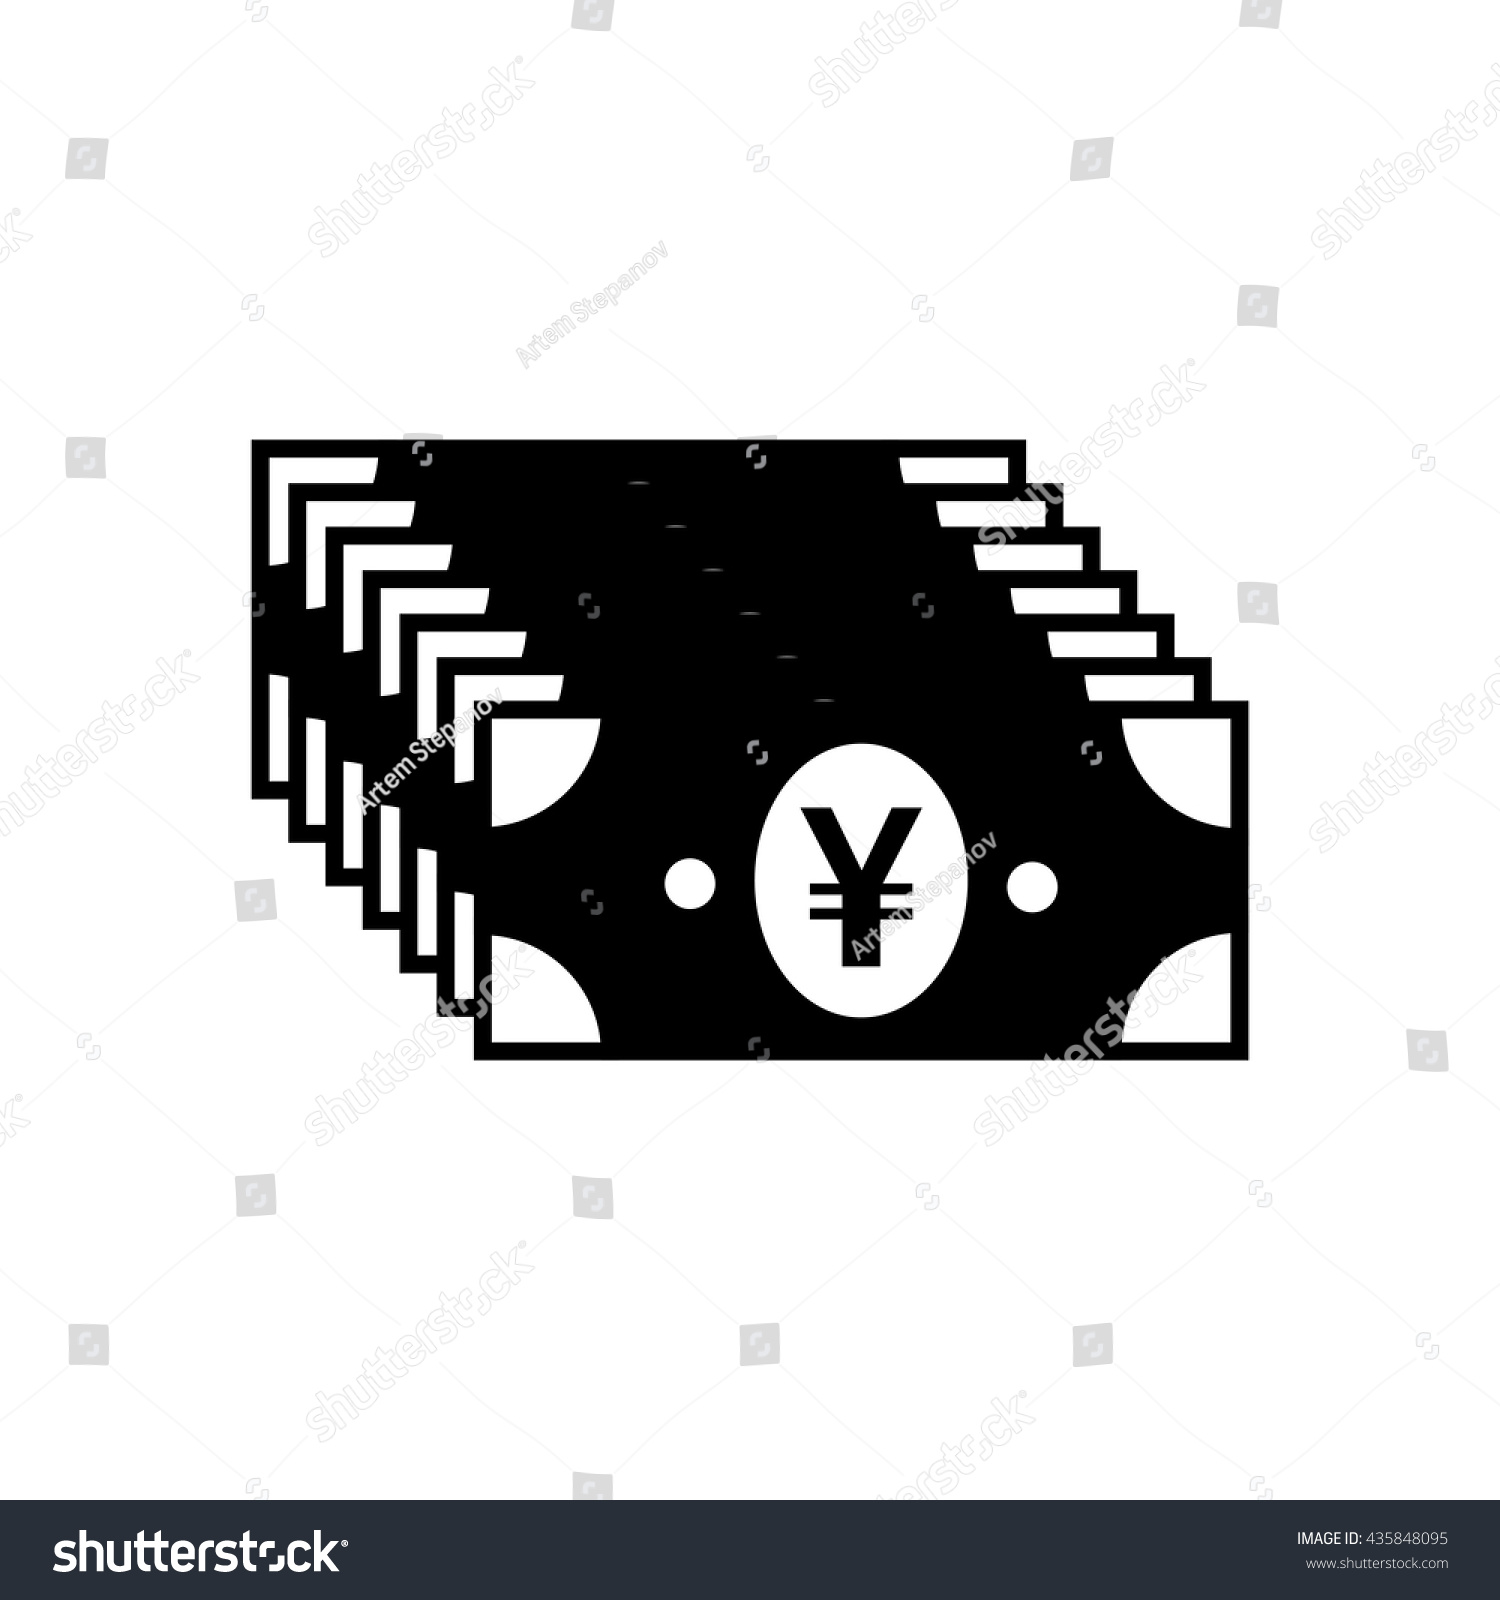 Japanese yen chinese yuan currency symbol stock vector 435848095 japanese yen or chinese yuan currency symbol flat icon for apps and websites biocorpaavc Image collections